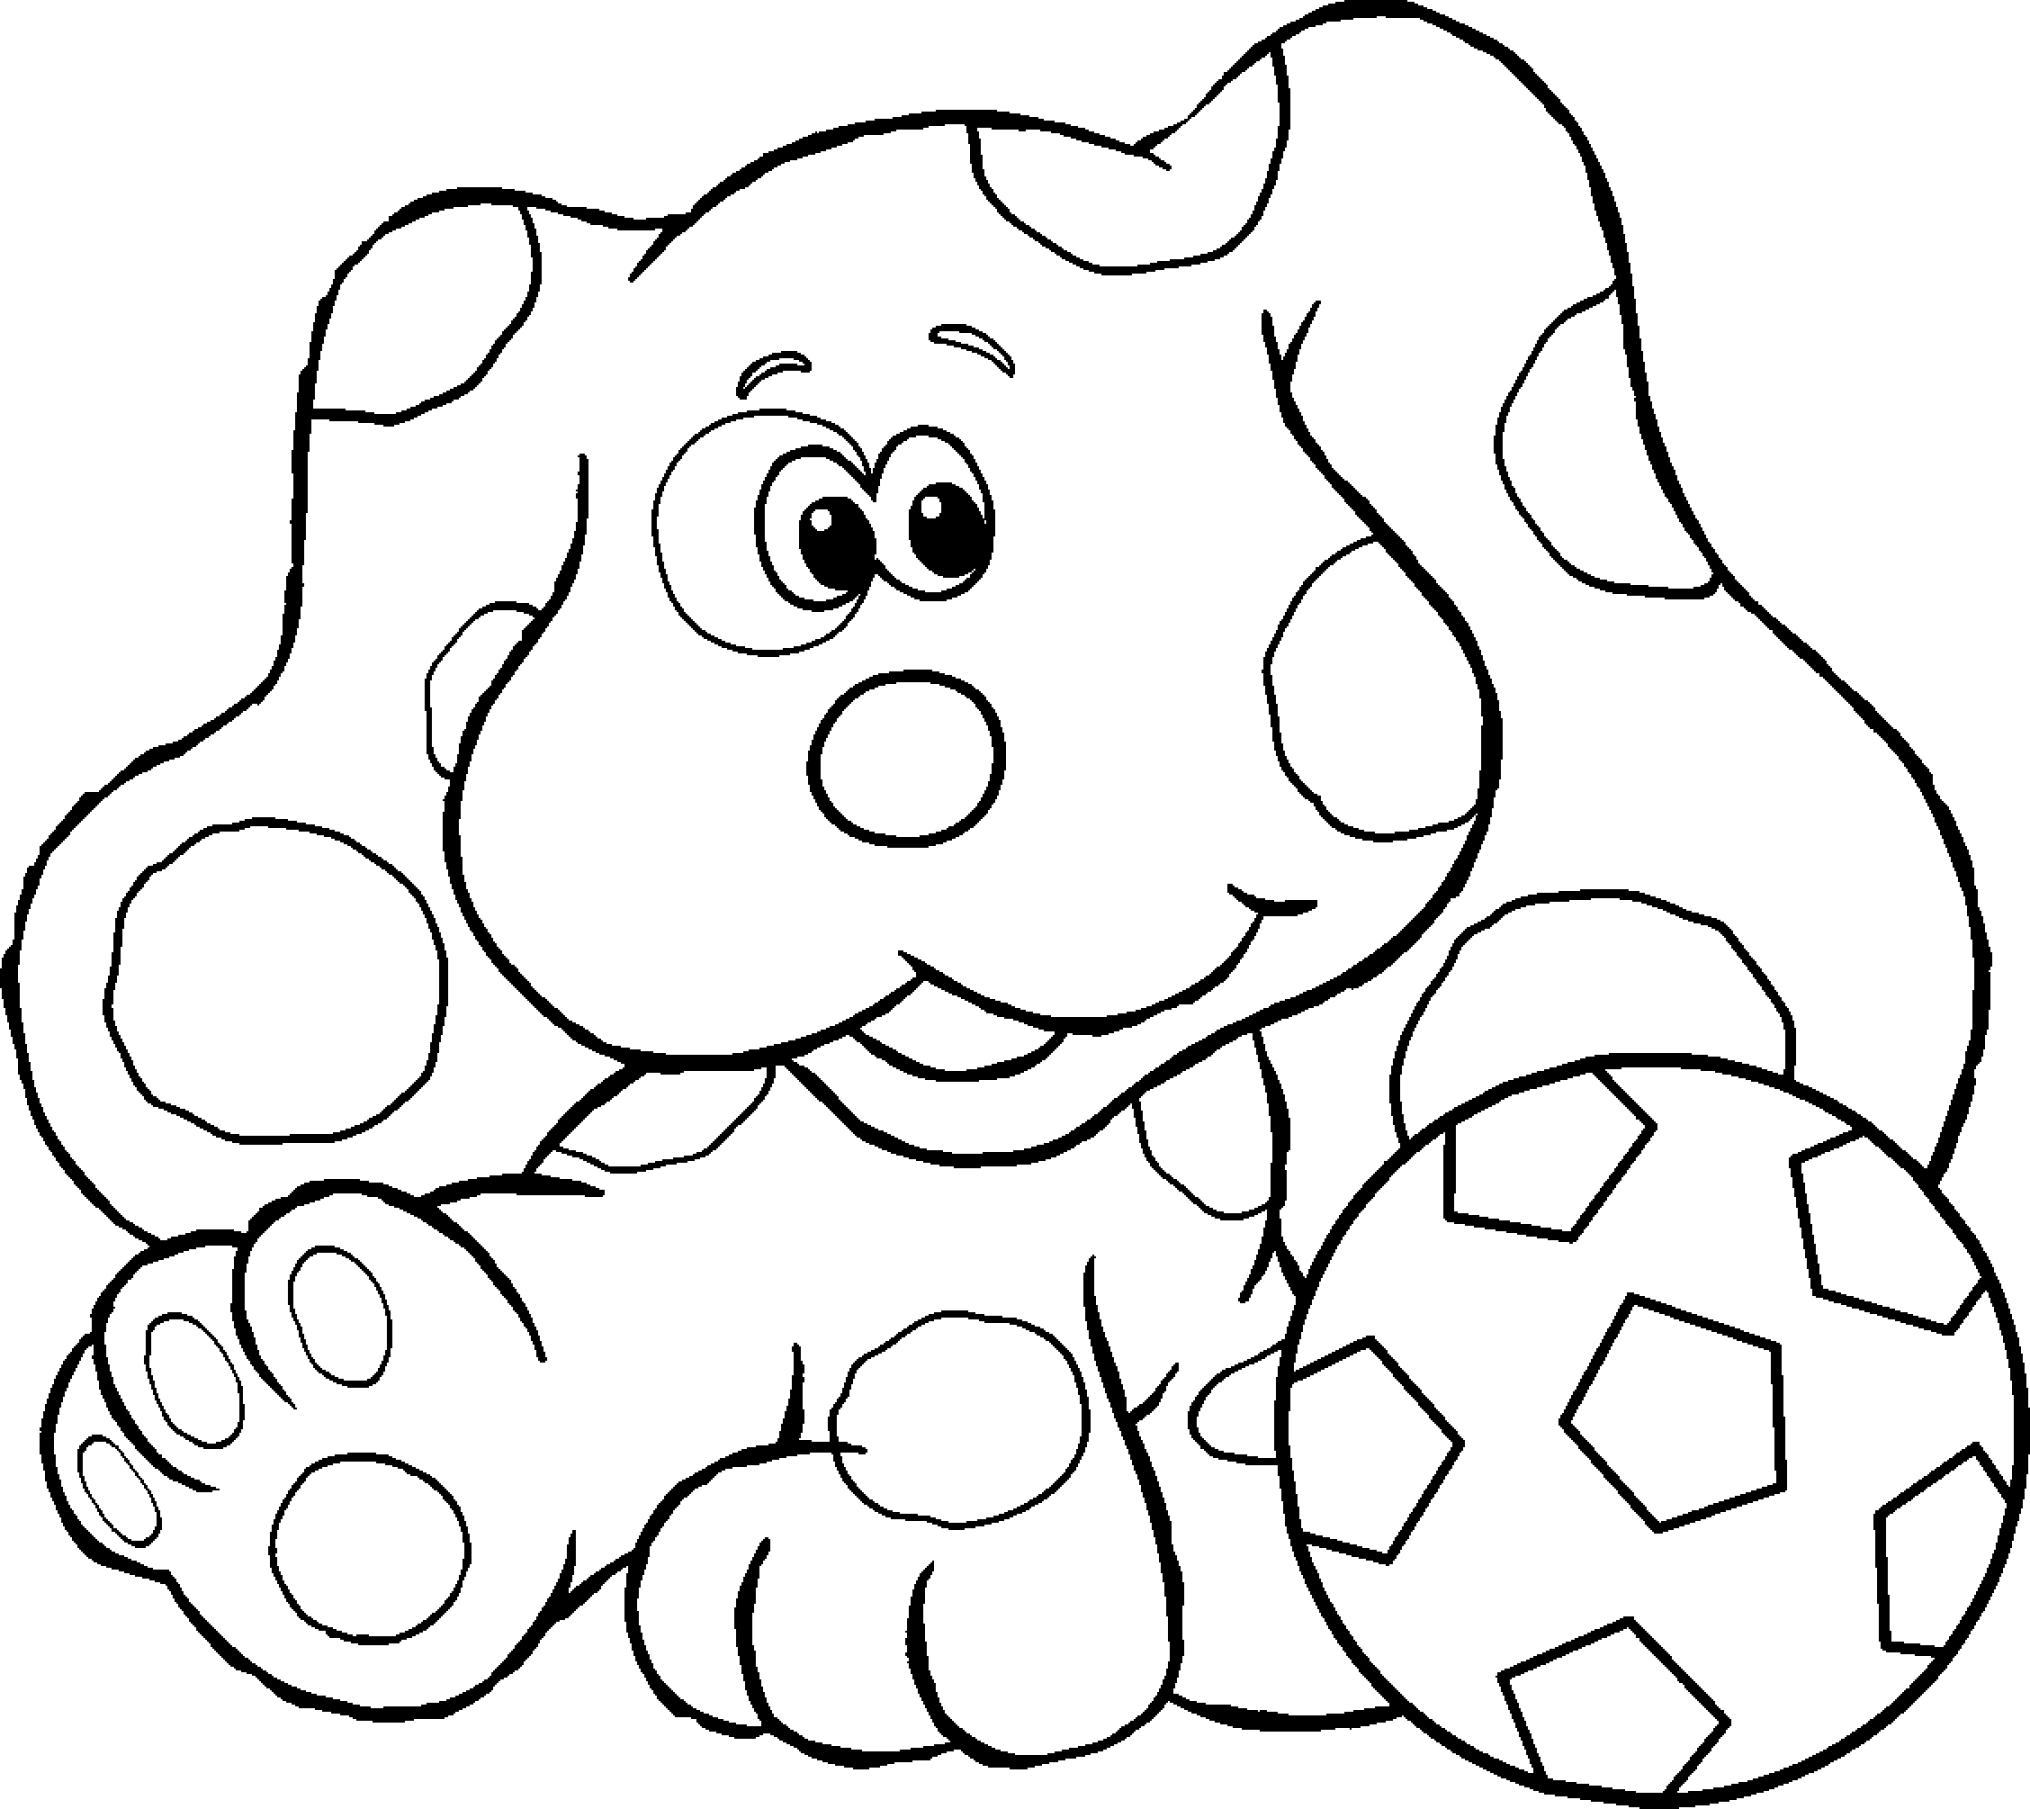 blues clues coloring book free printable blues clues coloring pages for kids coloring book clues blues